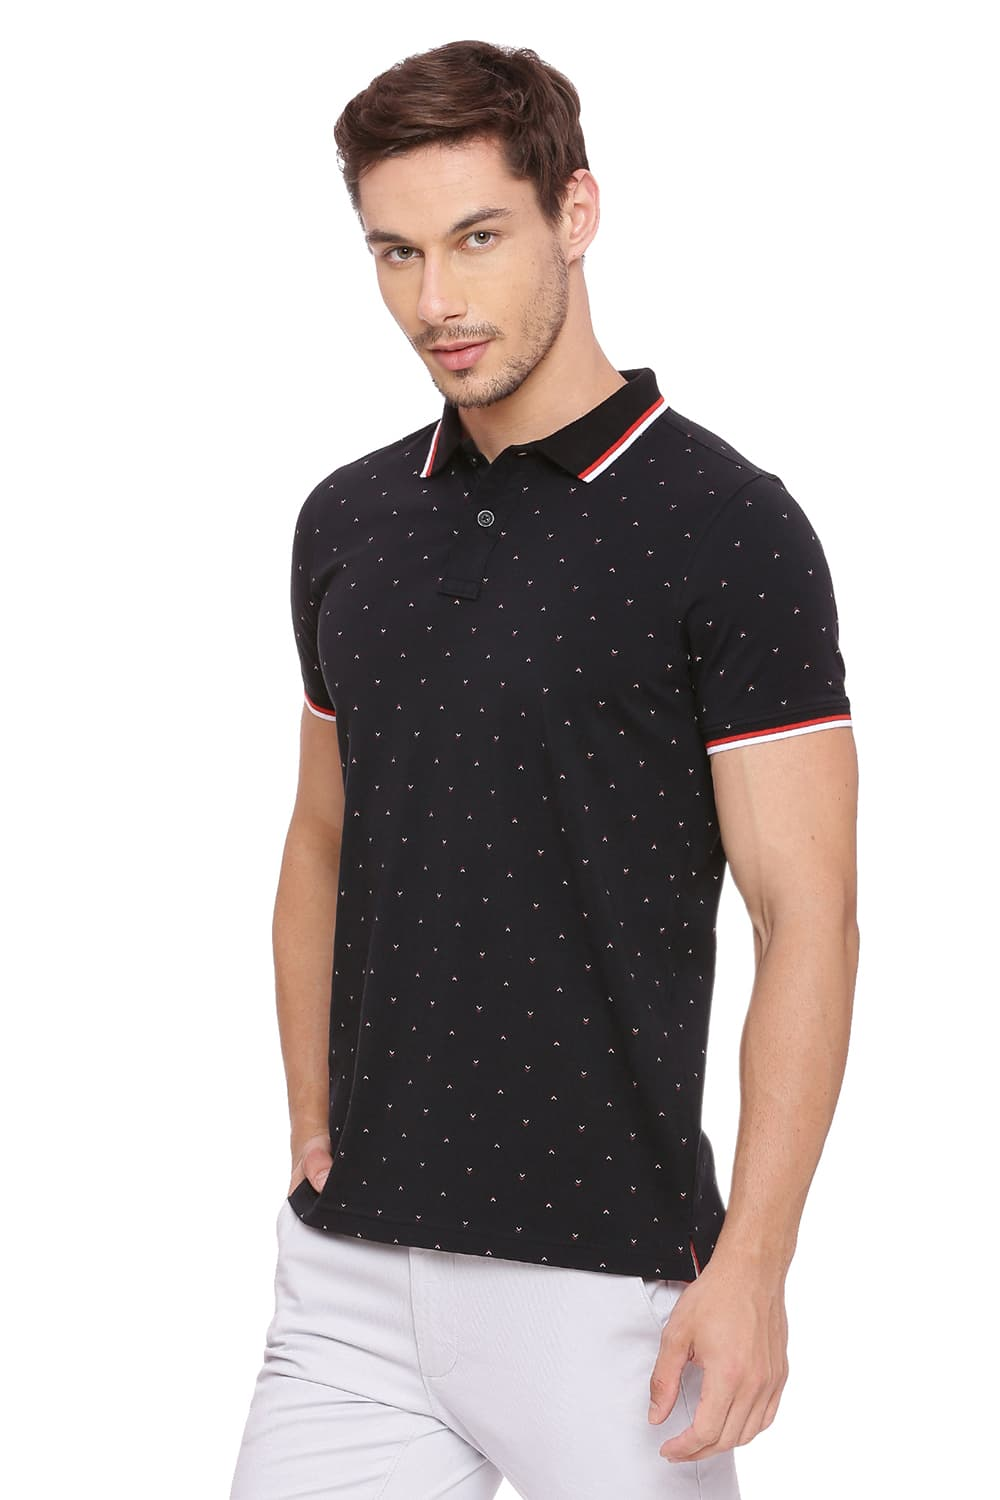 b96ade253f Basics Muscle Fit Jet Black Printed Polo T Shirt-18bts39392